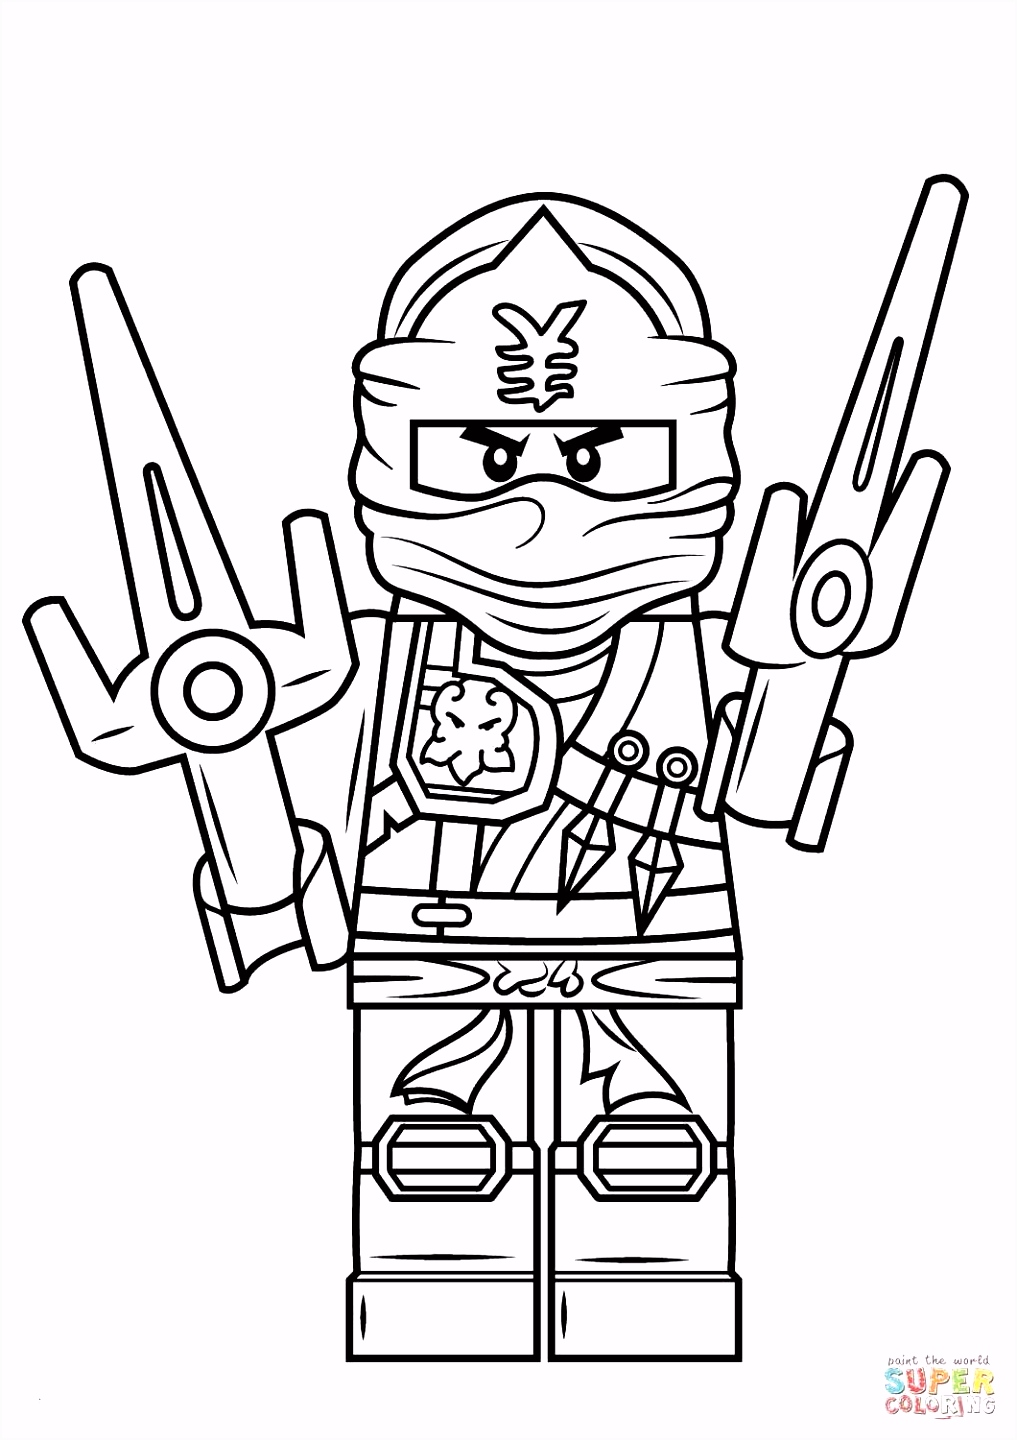 33 Beautiful Lego Ninjago A Imprimer Coloriage Kids